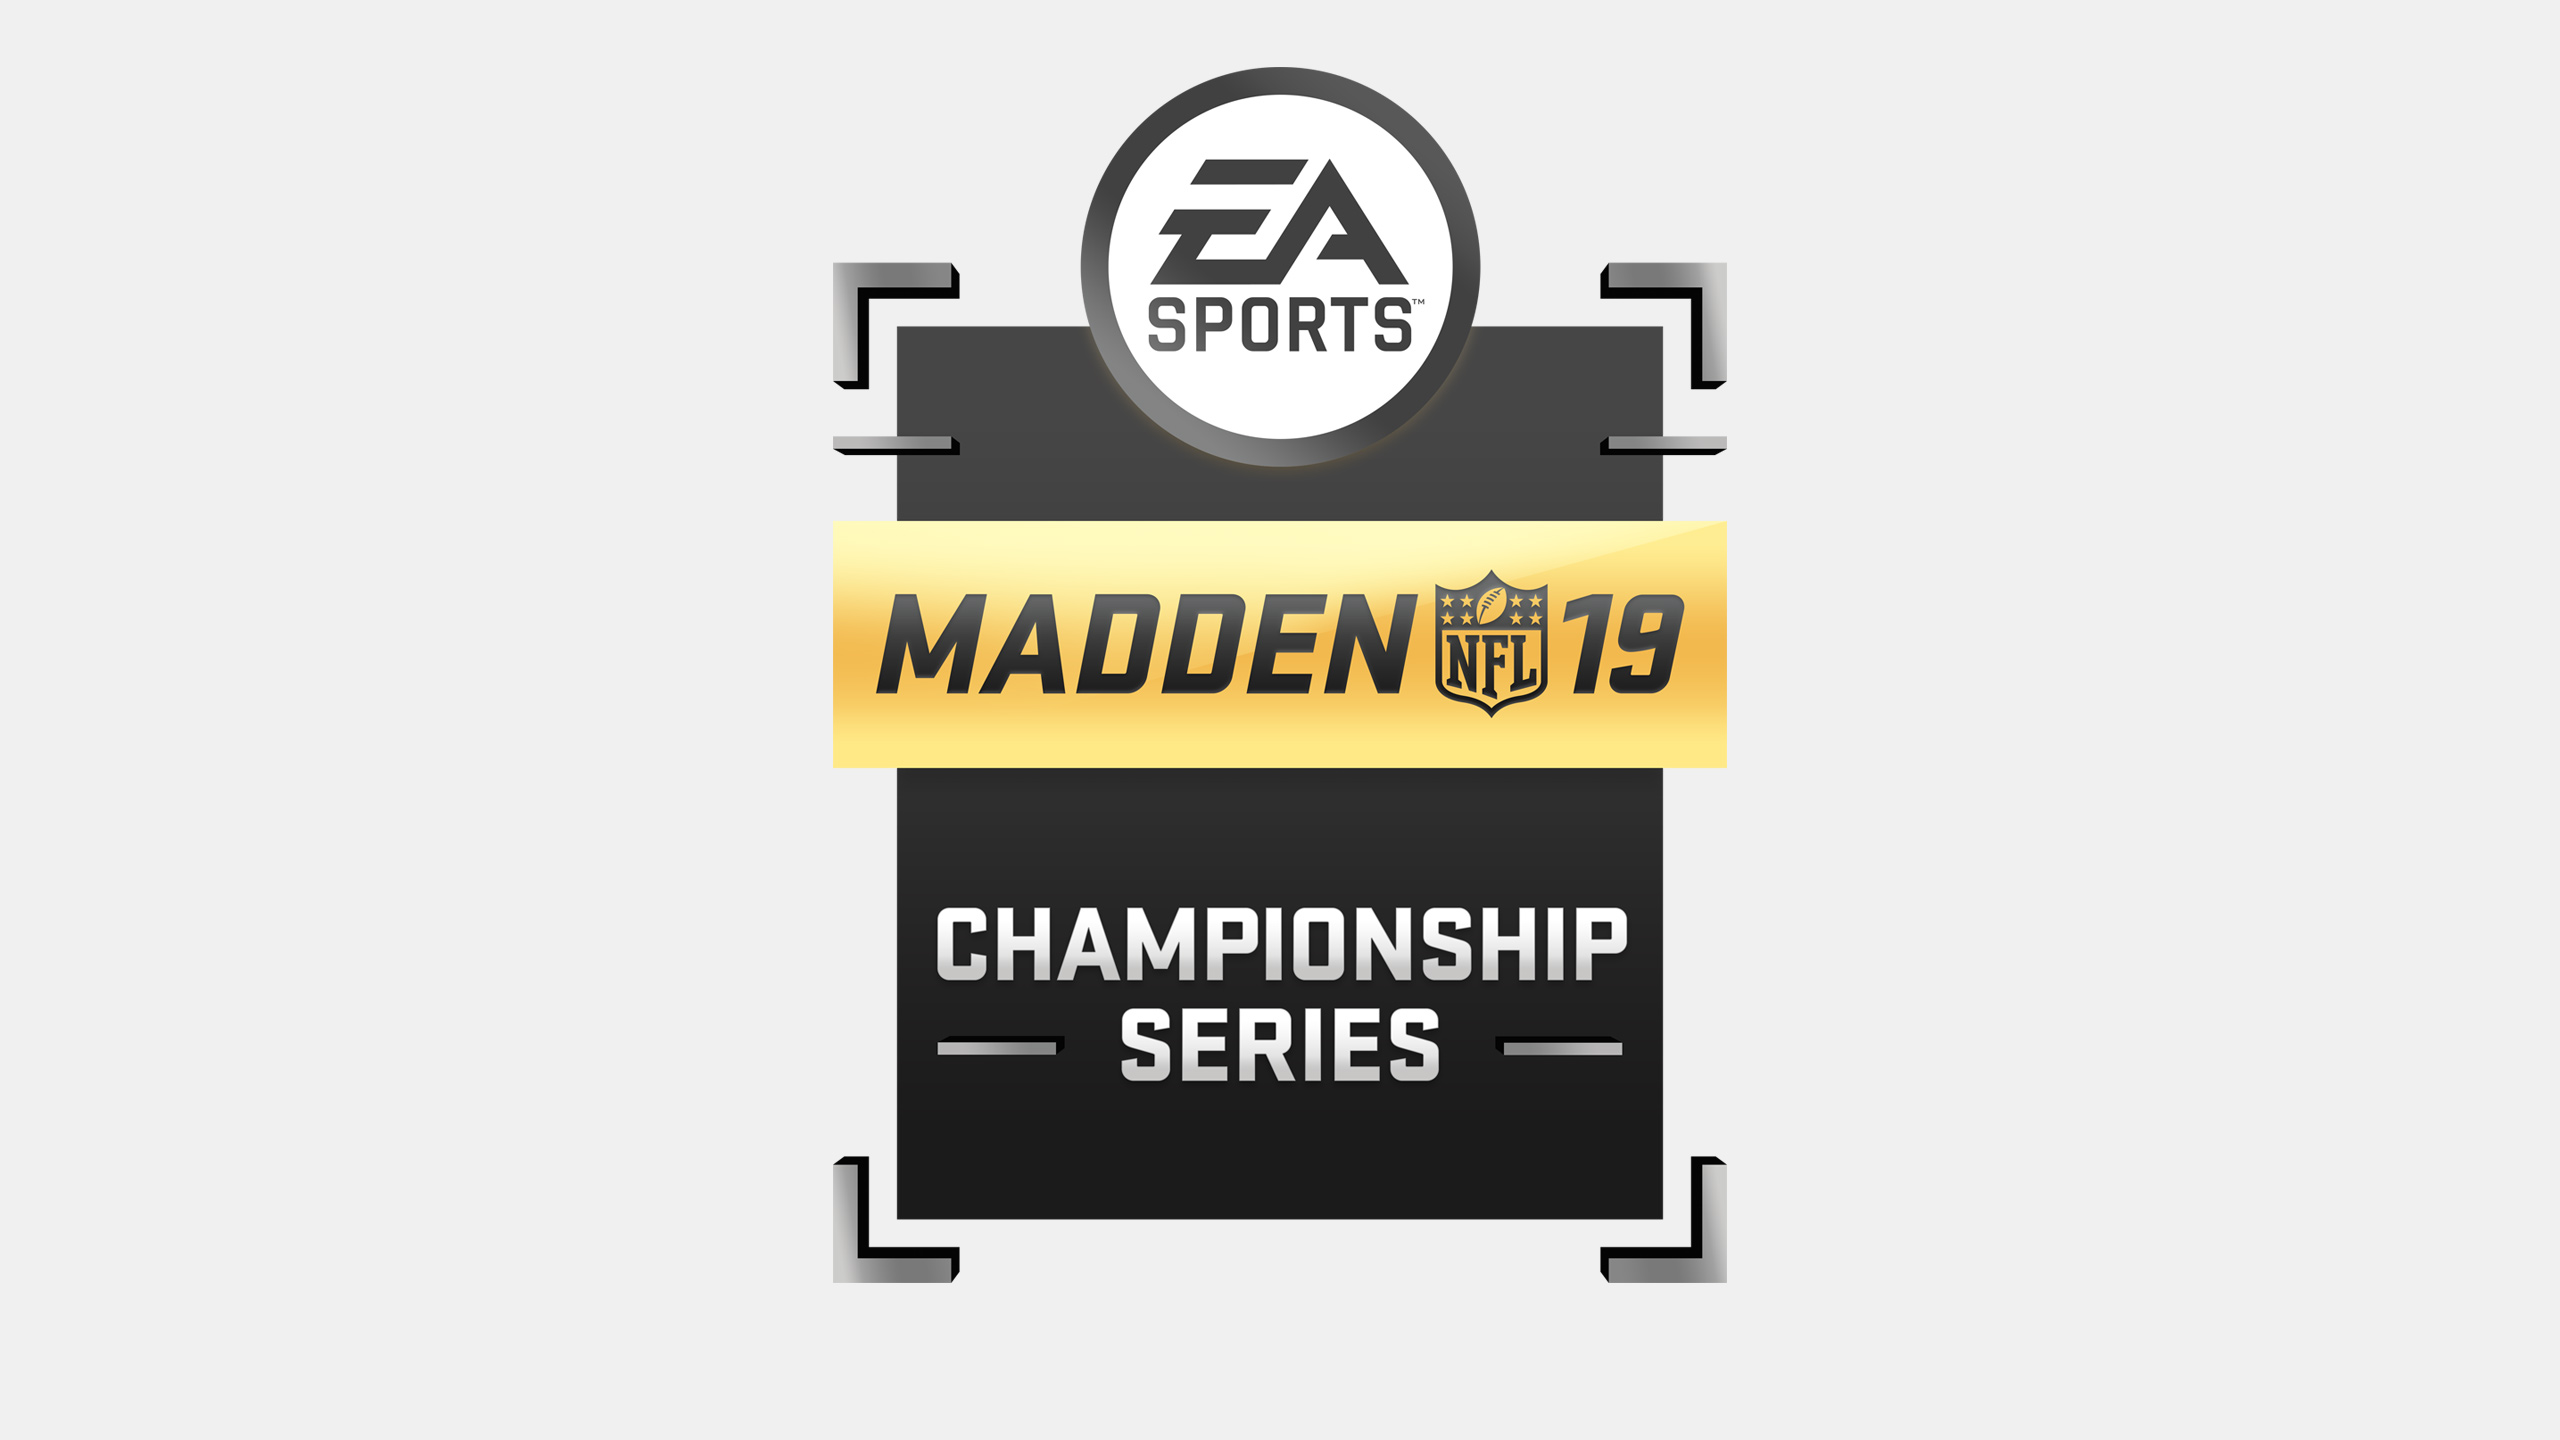 Road to Madden Bowl: Madden Challenge